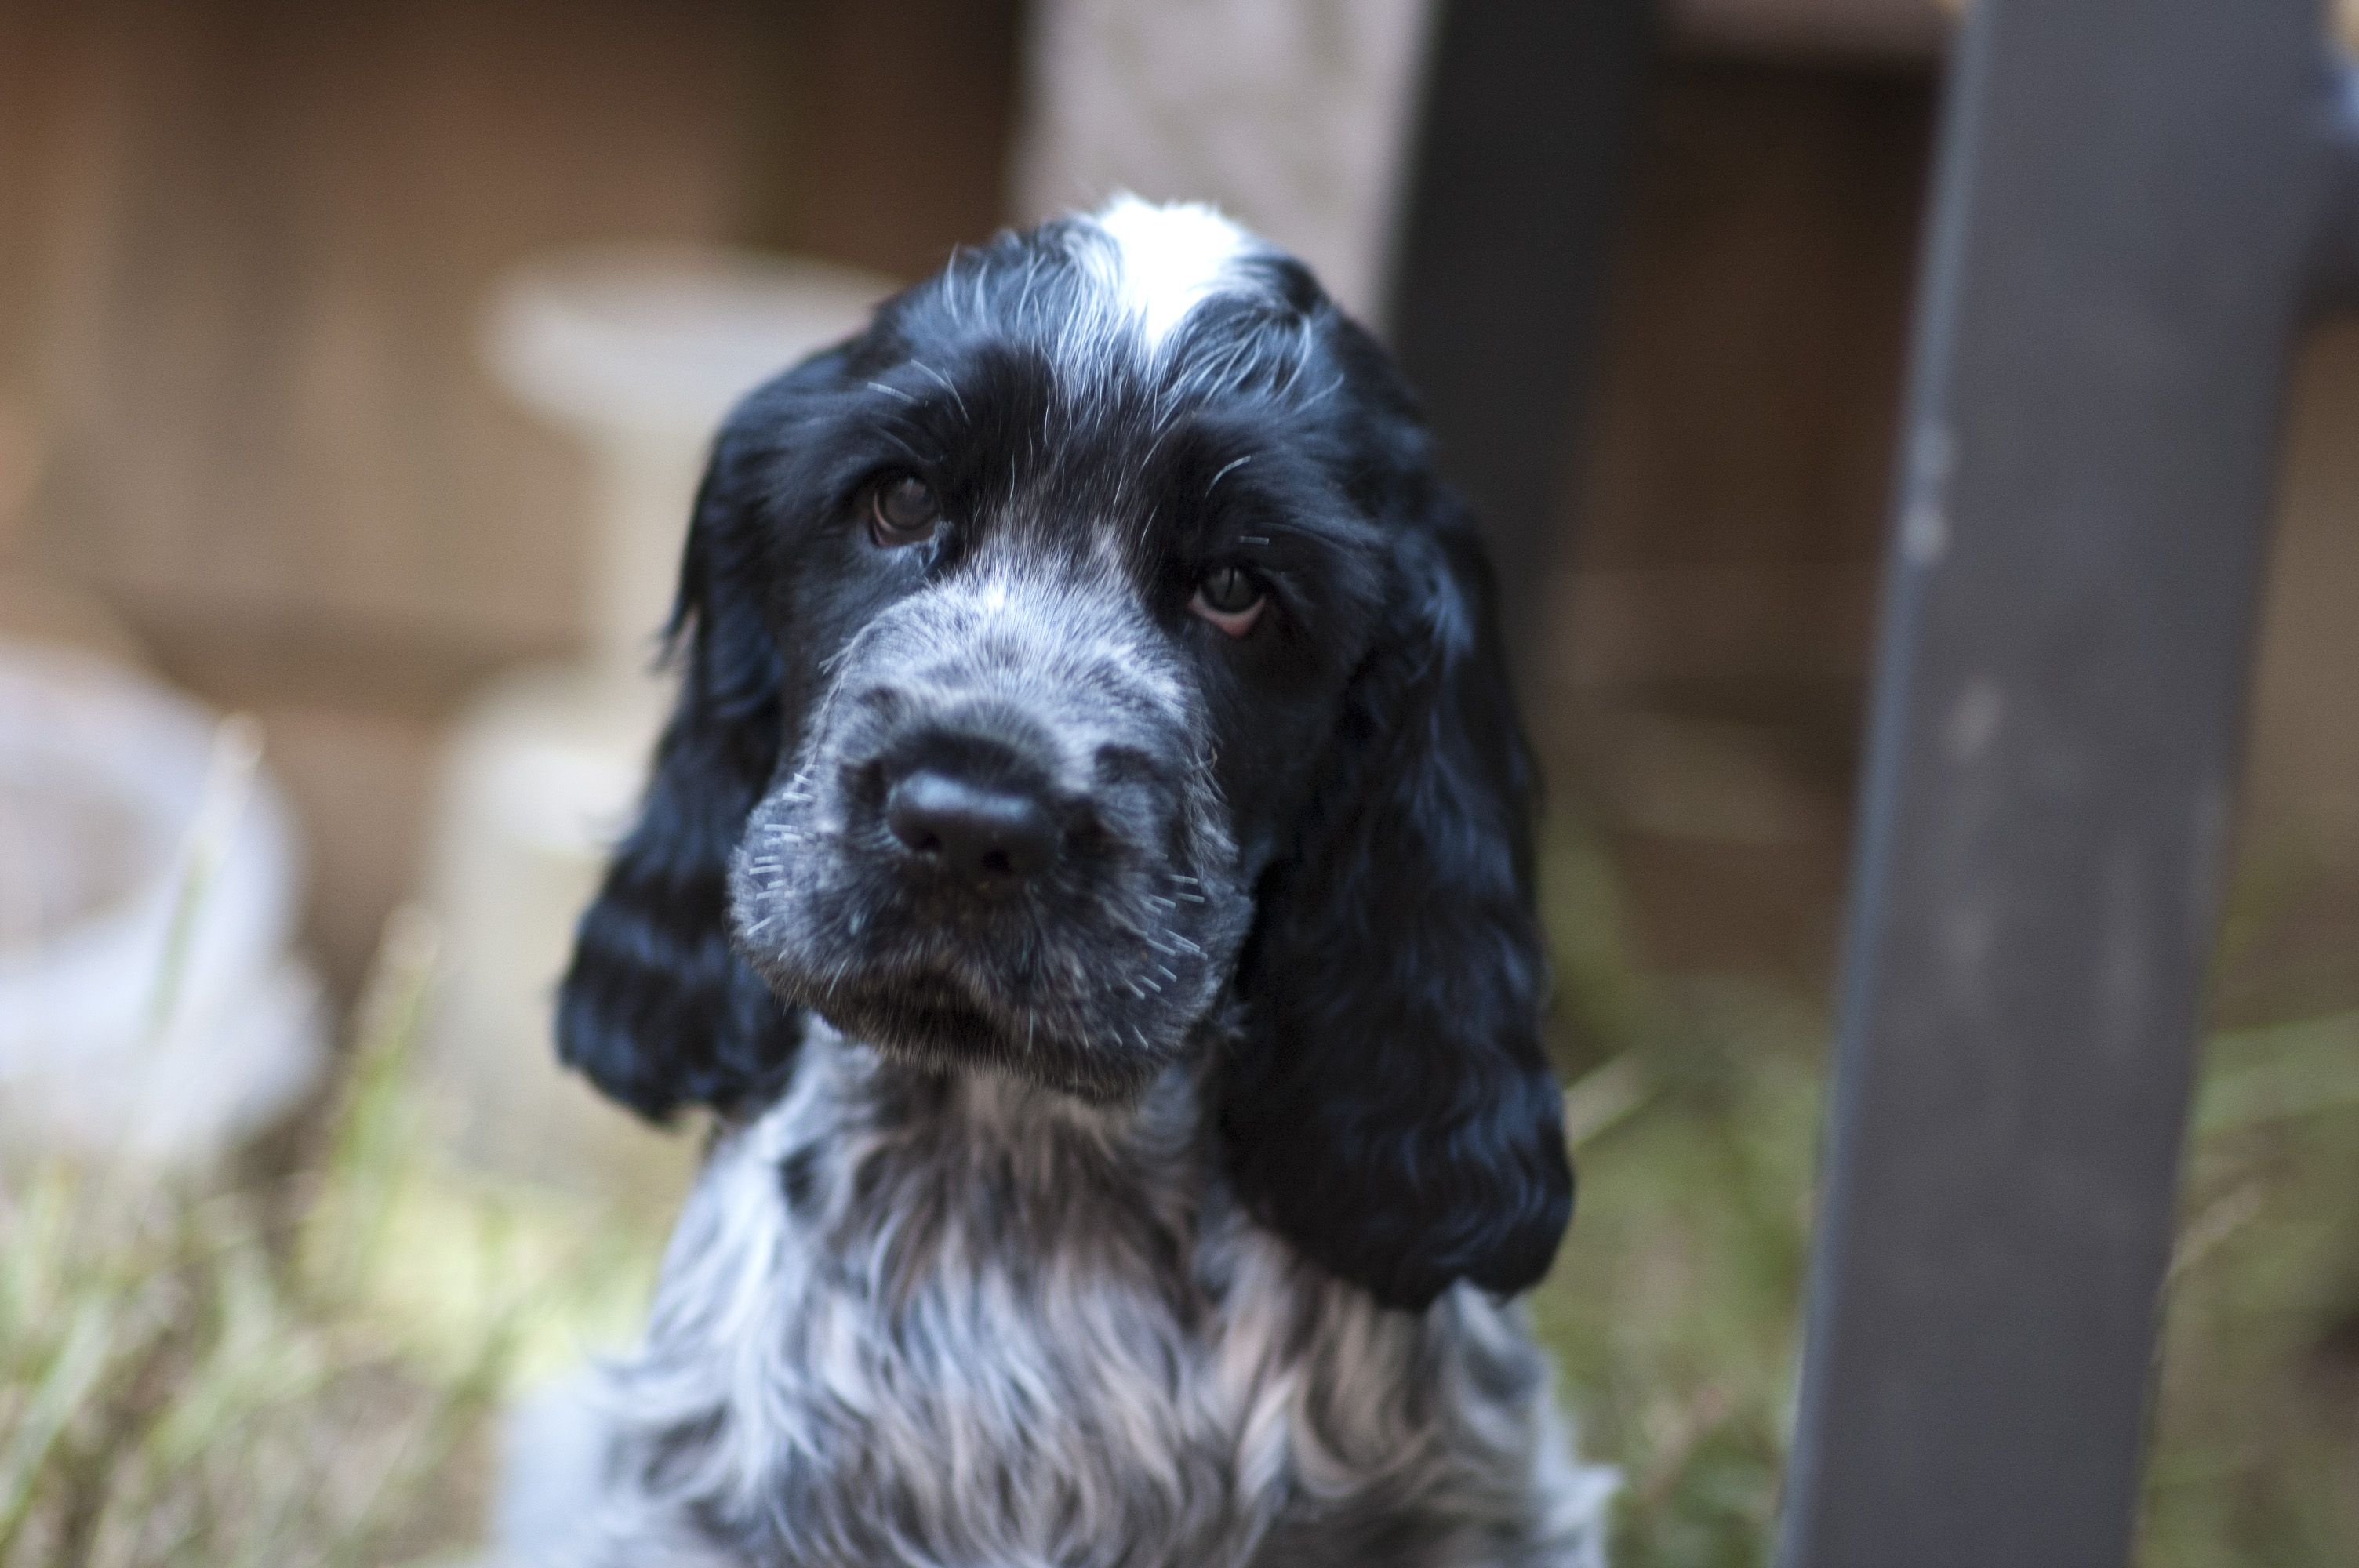 Here S Sergeant Our Blue Roan Cocker Spaniel As A Pup He S Favourite Thing In The World Is Blue Roan Cocker Spaniel English Cocker Spaniel English Cocker